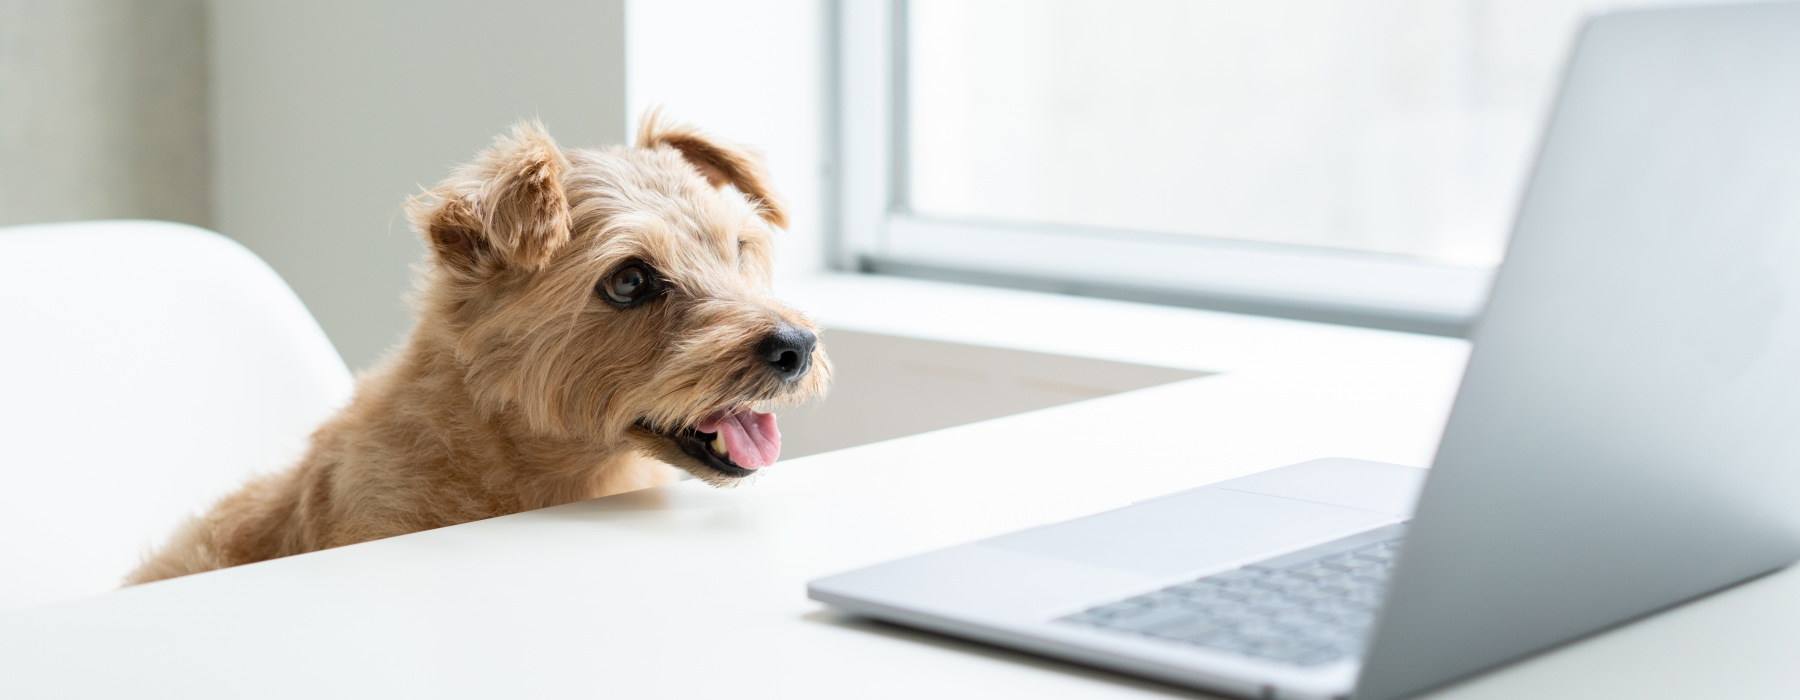 Dog at laptop